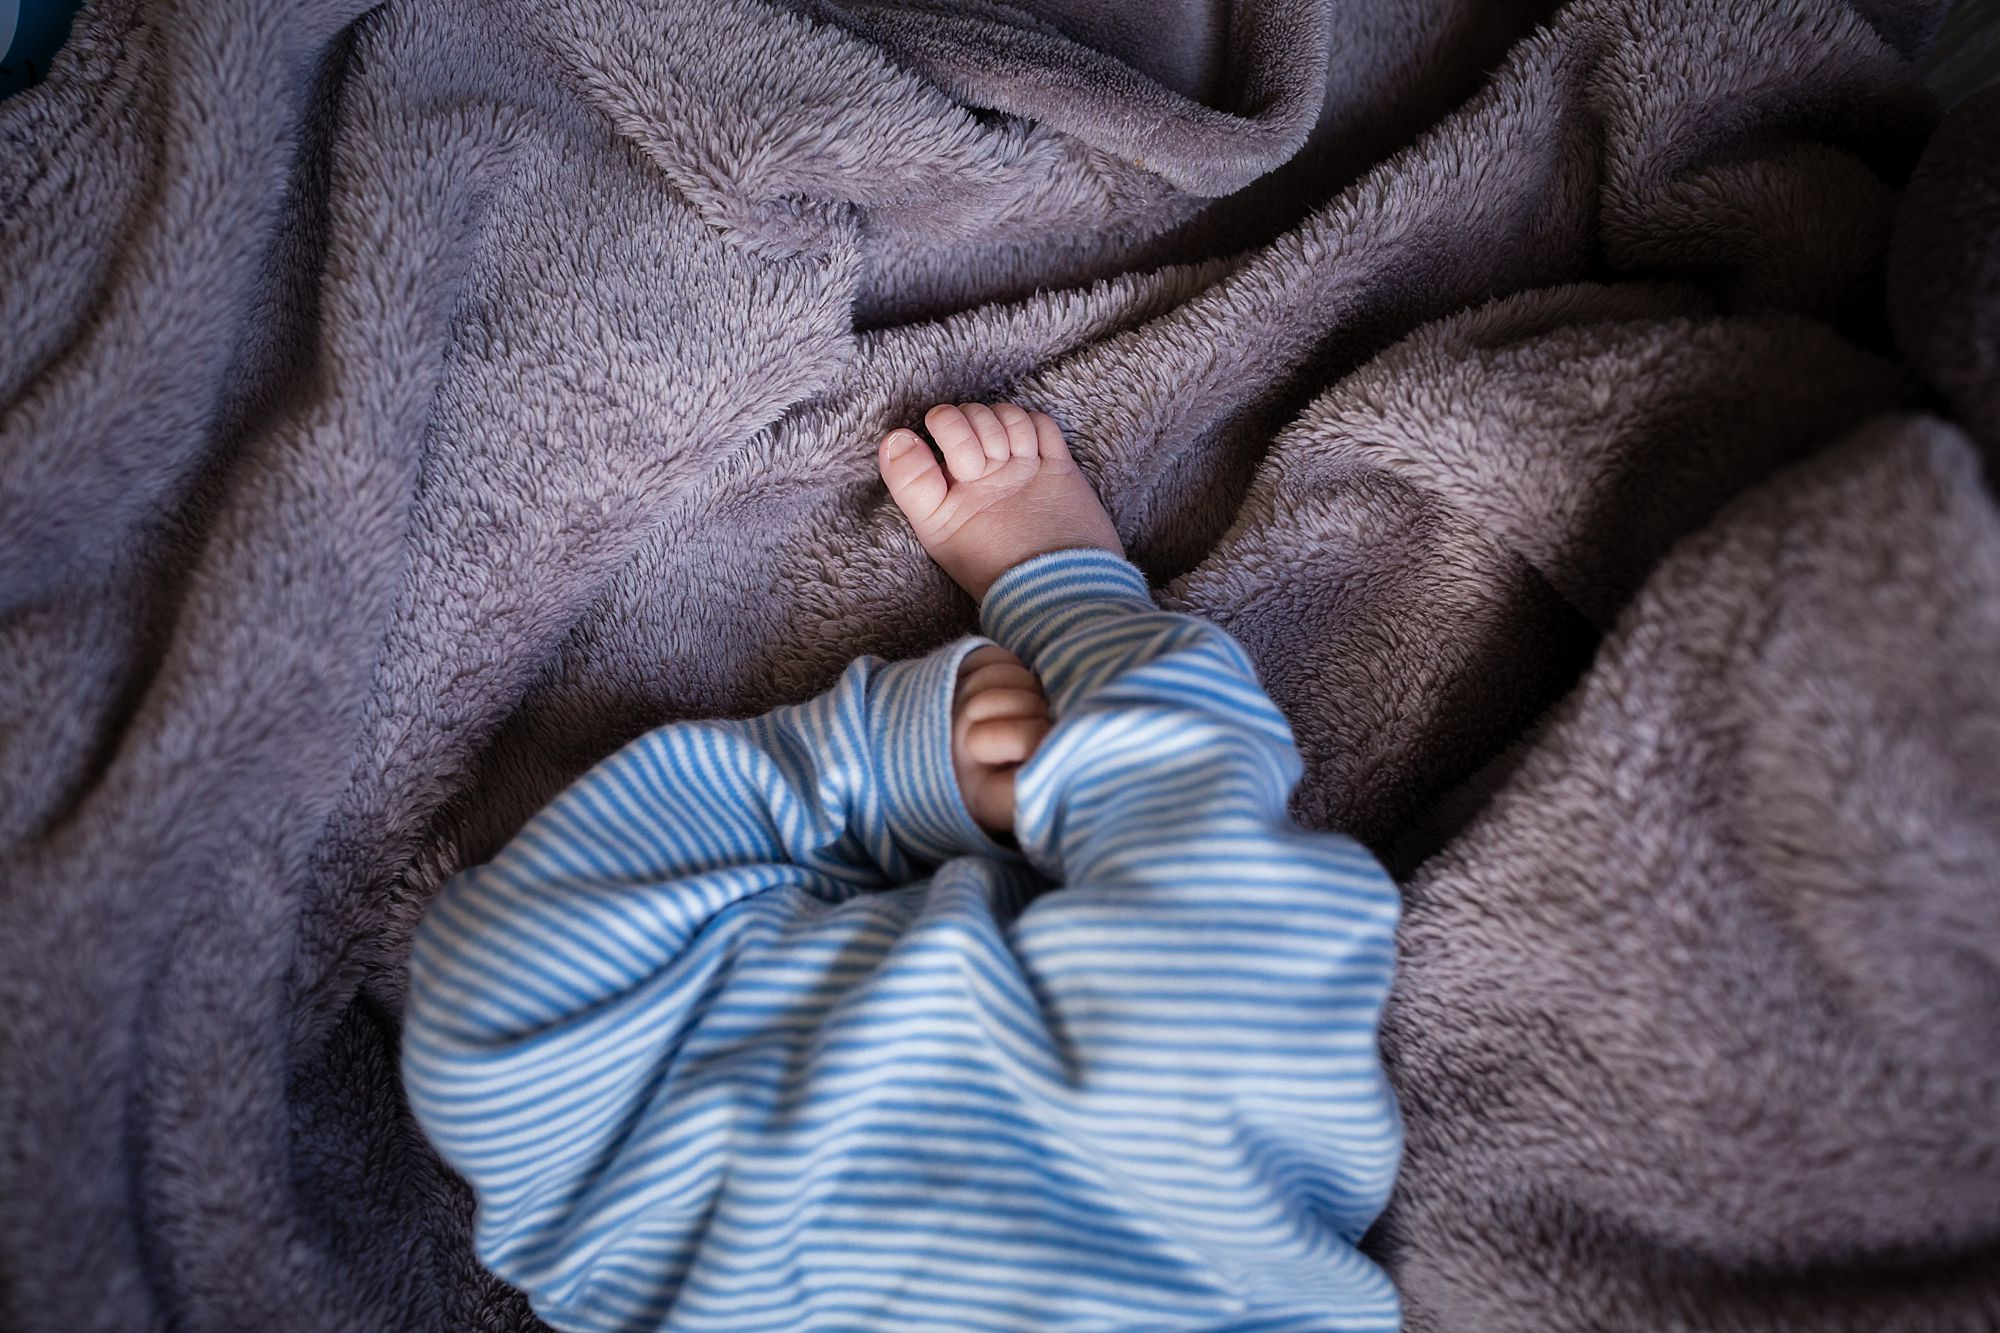 Taiwan_In_Home_Newborn_Photo_Session_Hunnicutt_Photography_0021